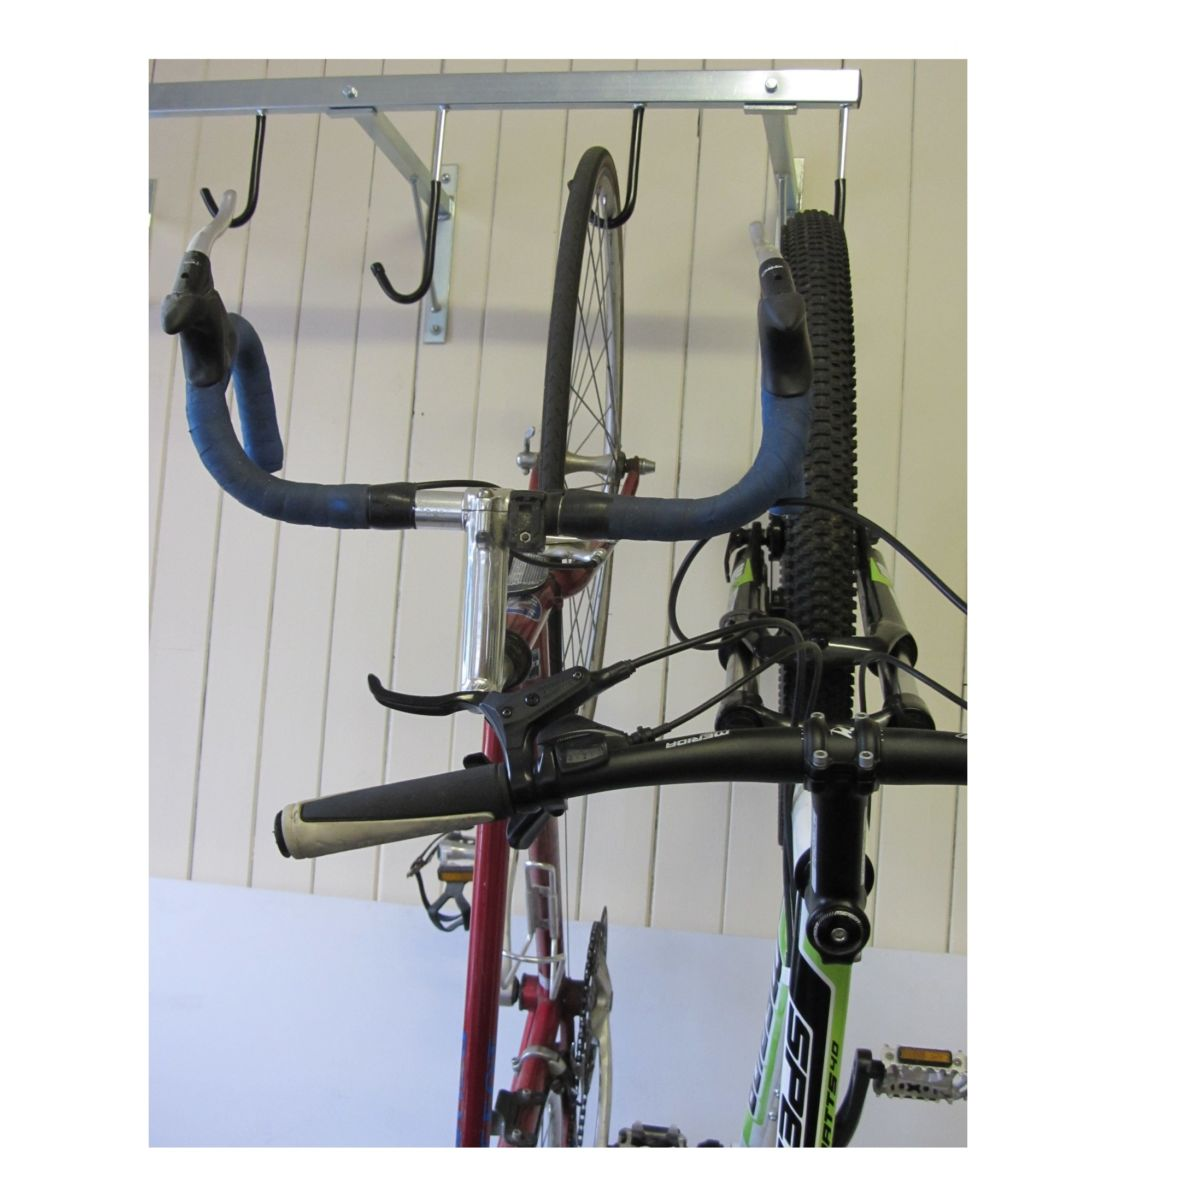 Vertical Cycle Rack For 4 5 Or 6 Bikes Workplace Stuff